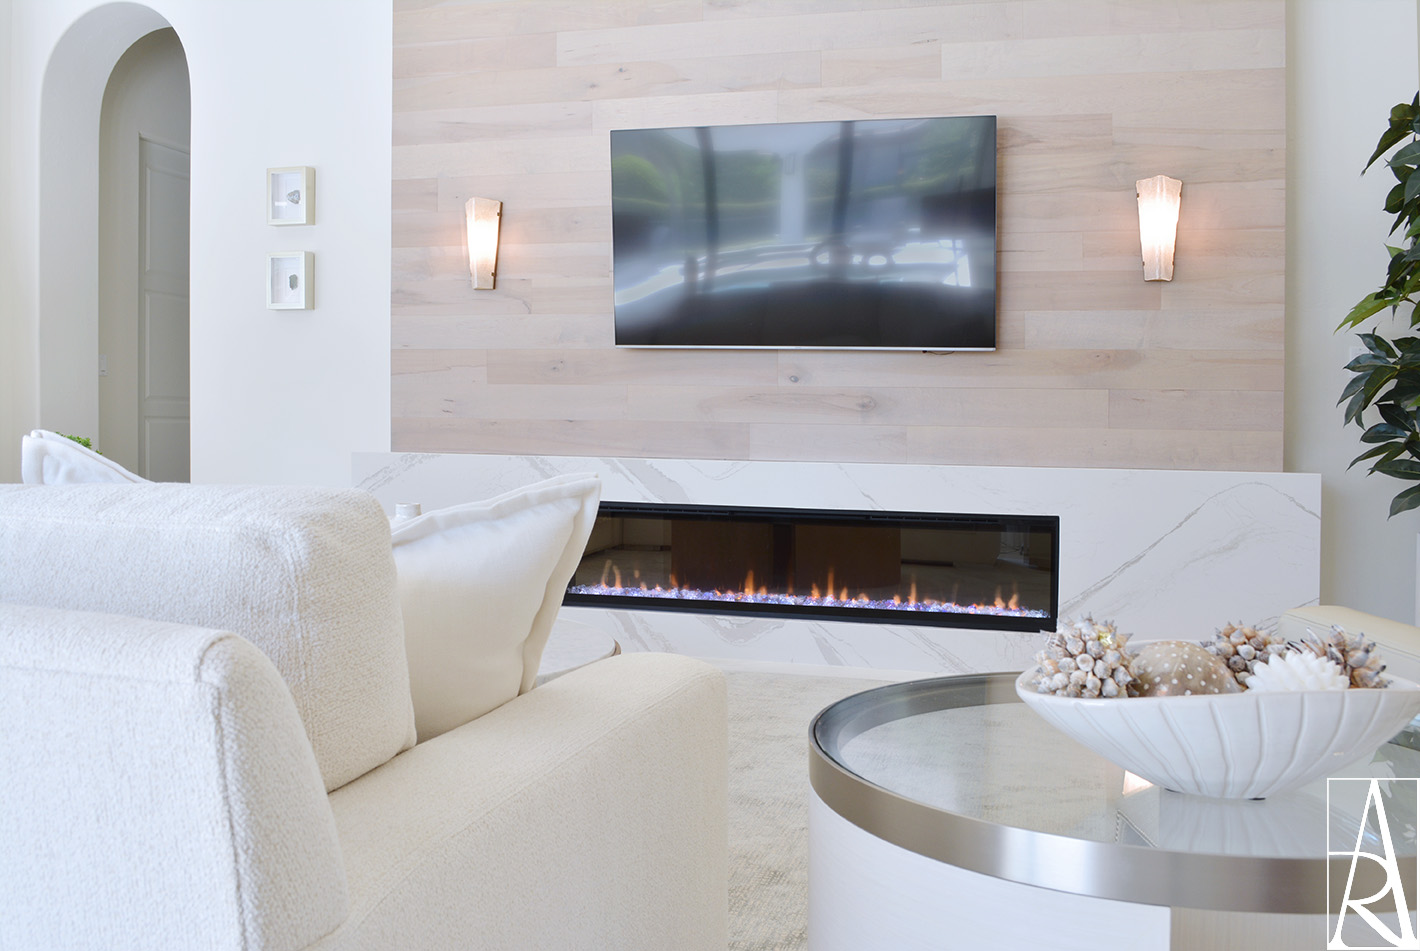 A contemporary living room interior design at The Lake Club in Lakewood Ranch, FL